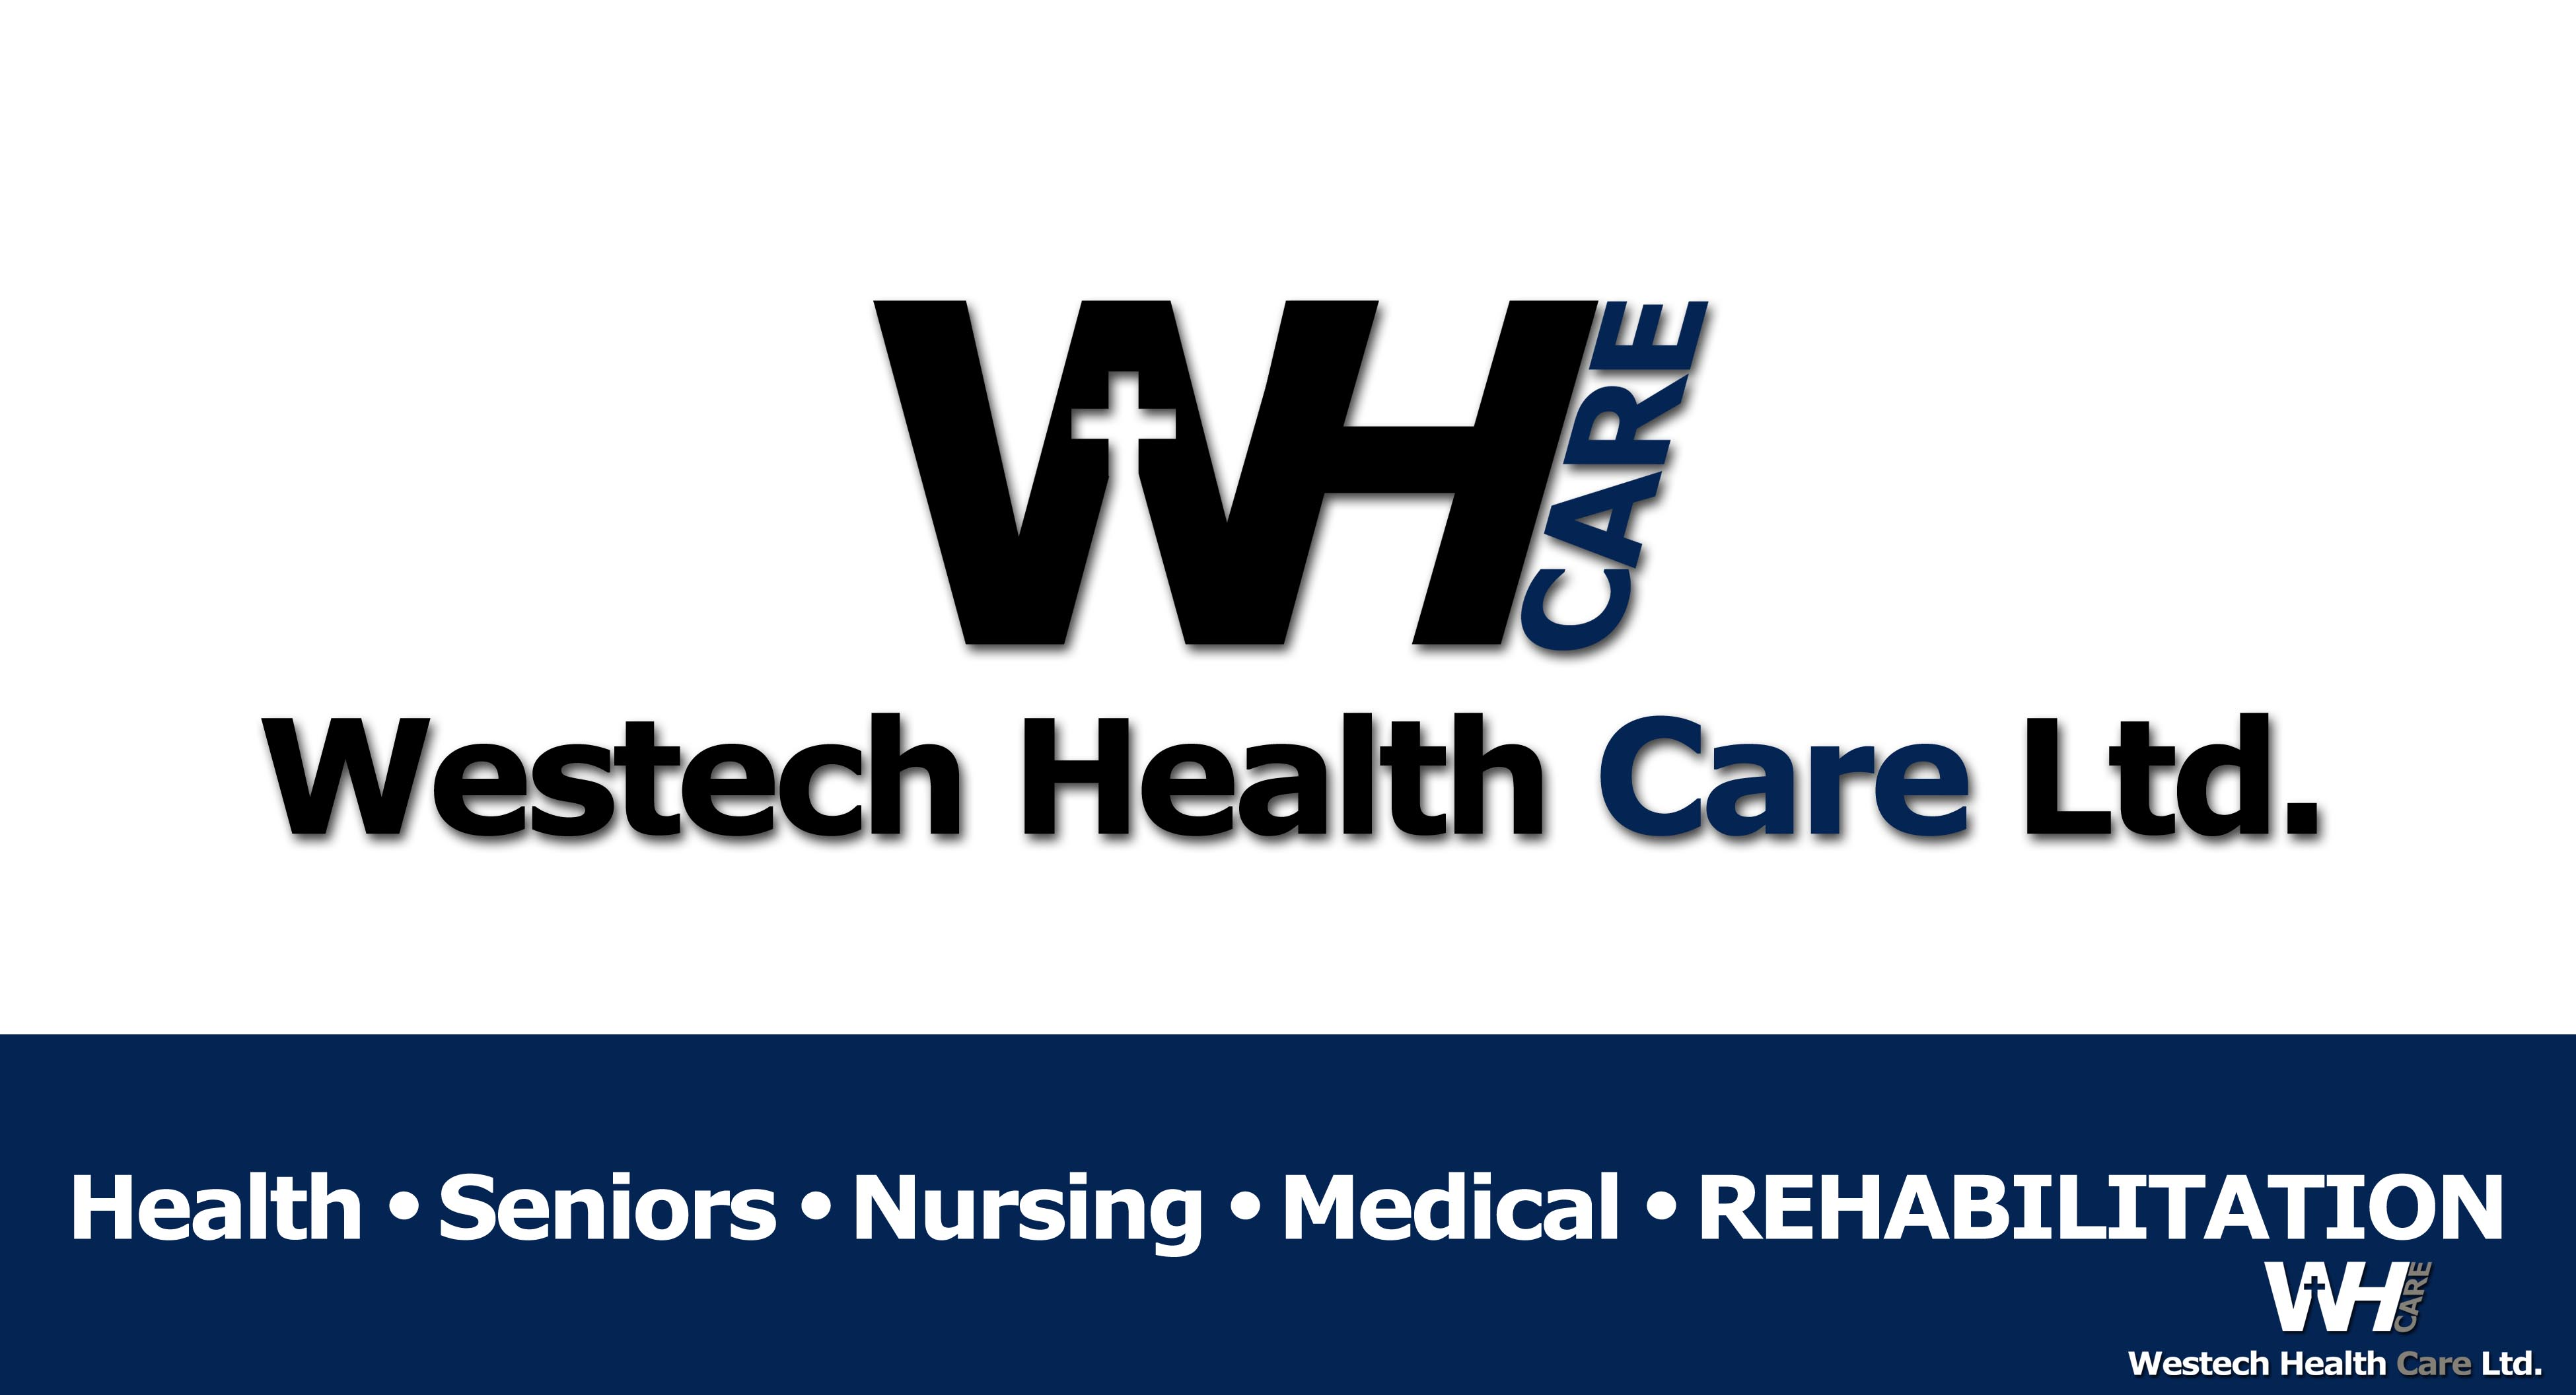 Logo Design by Cesar III Sotto - Entry No. 55 in the Logo Design Contest Creative Logo Design for Westech Health Care Ltd..